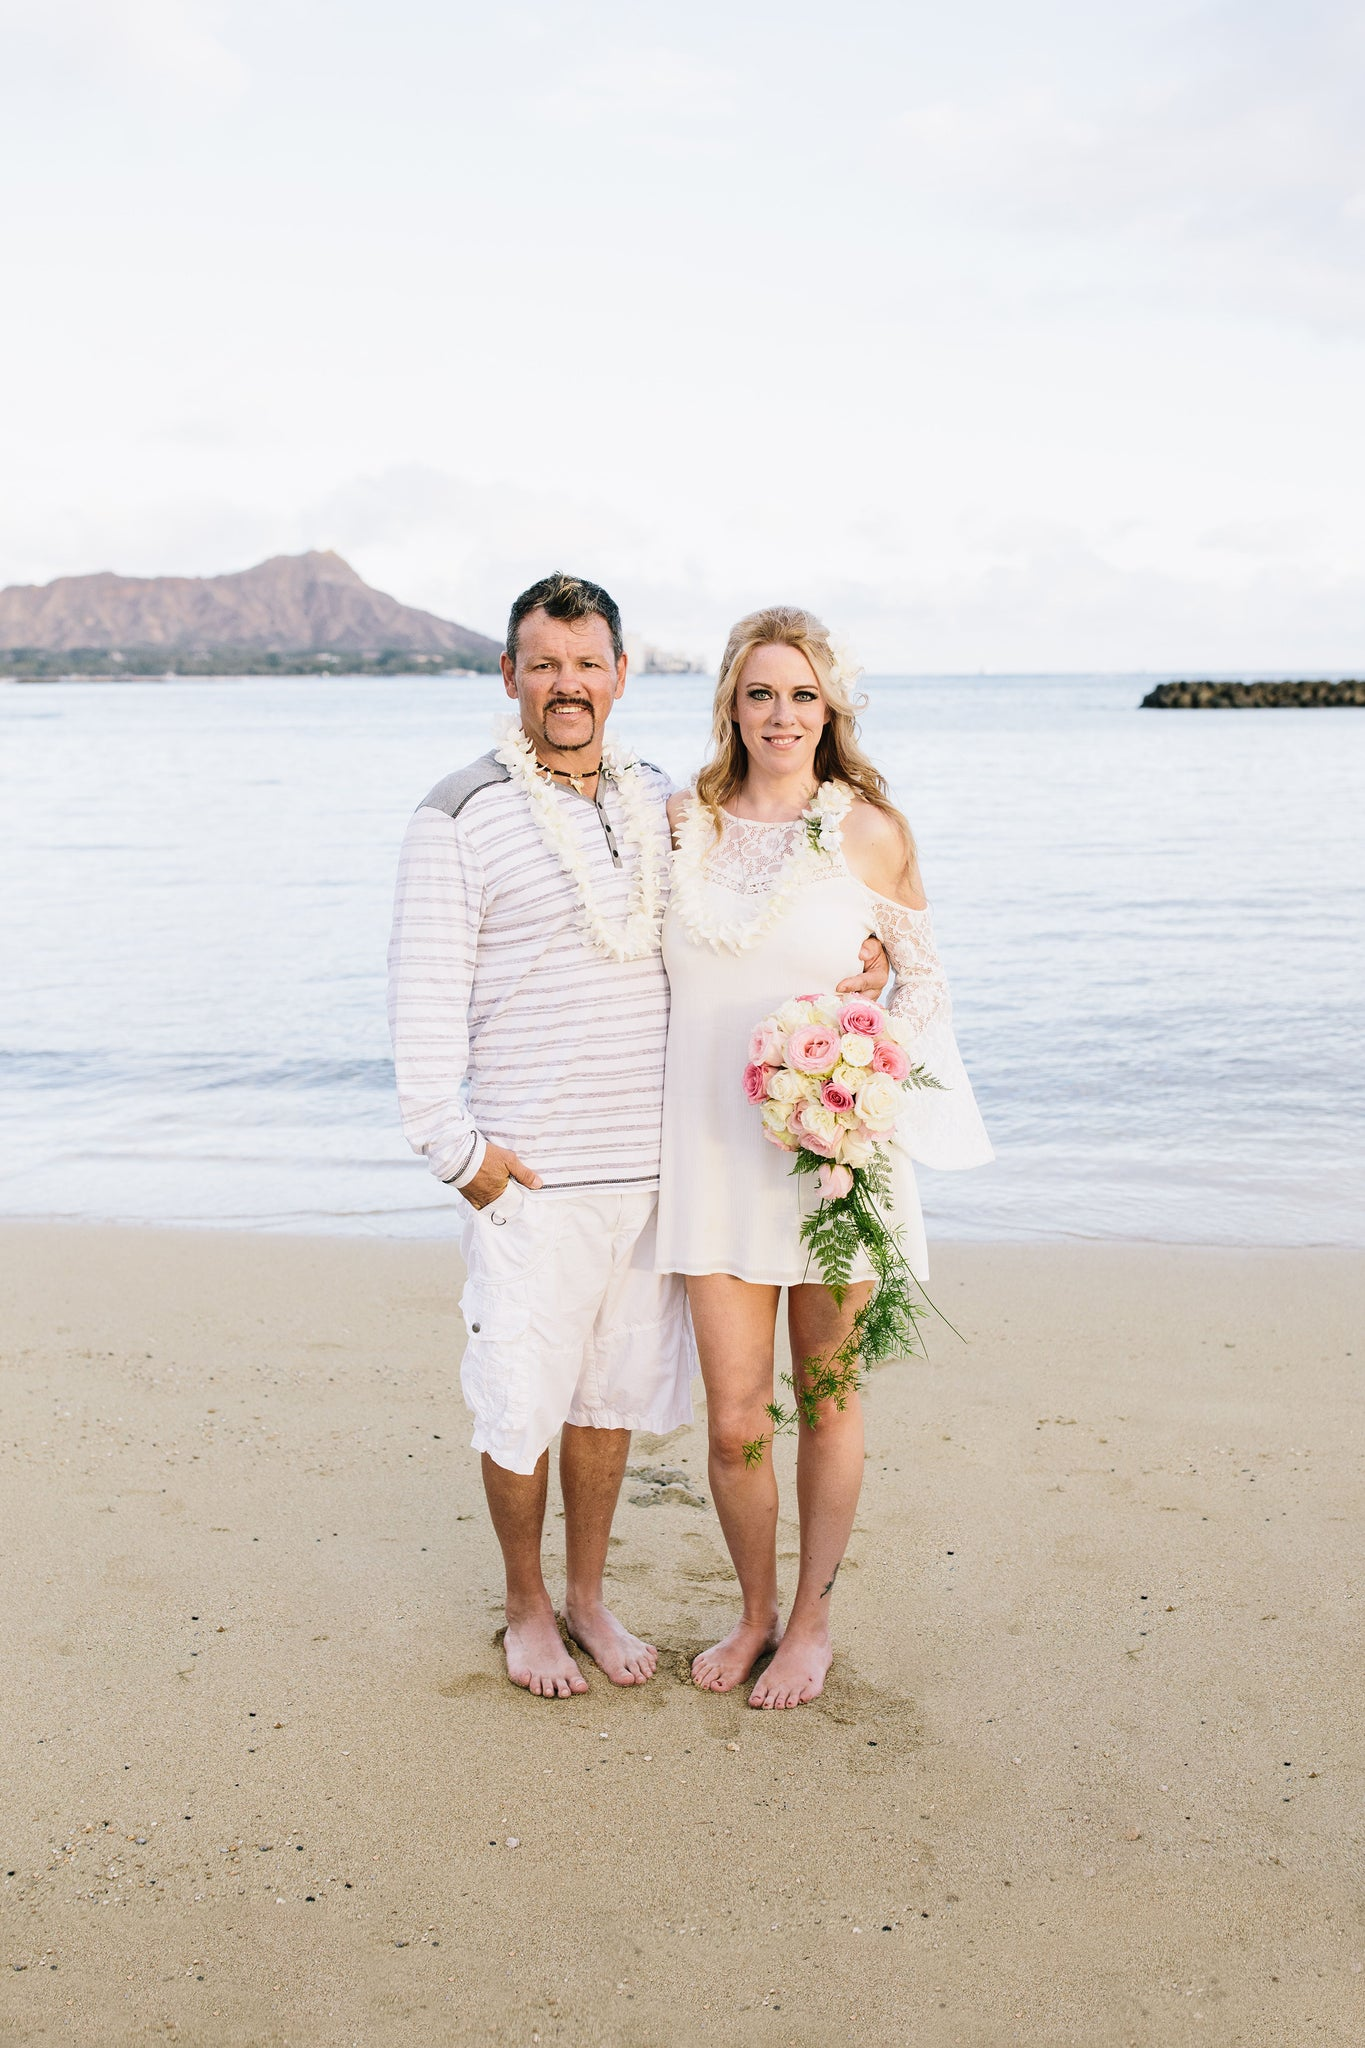 Bride and Groom Marry on Duke Kohanamoku Beach in Waikiki, Oahu, Hawaii